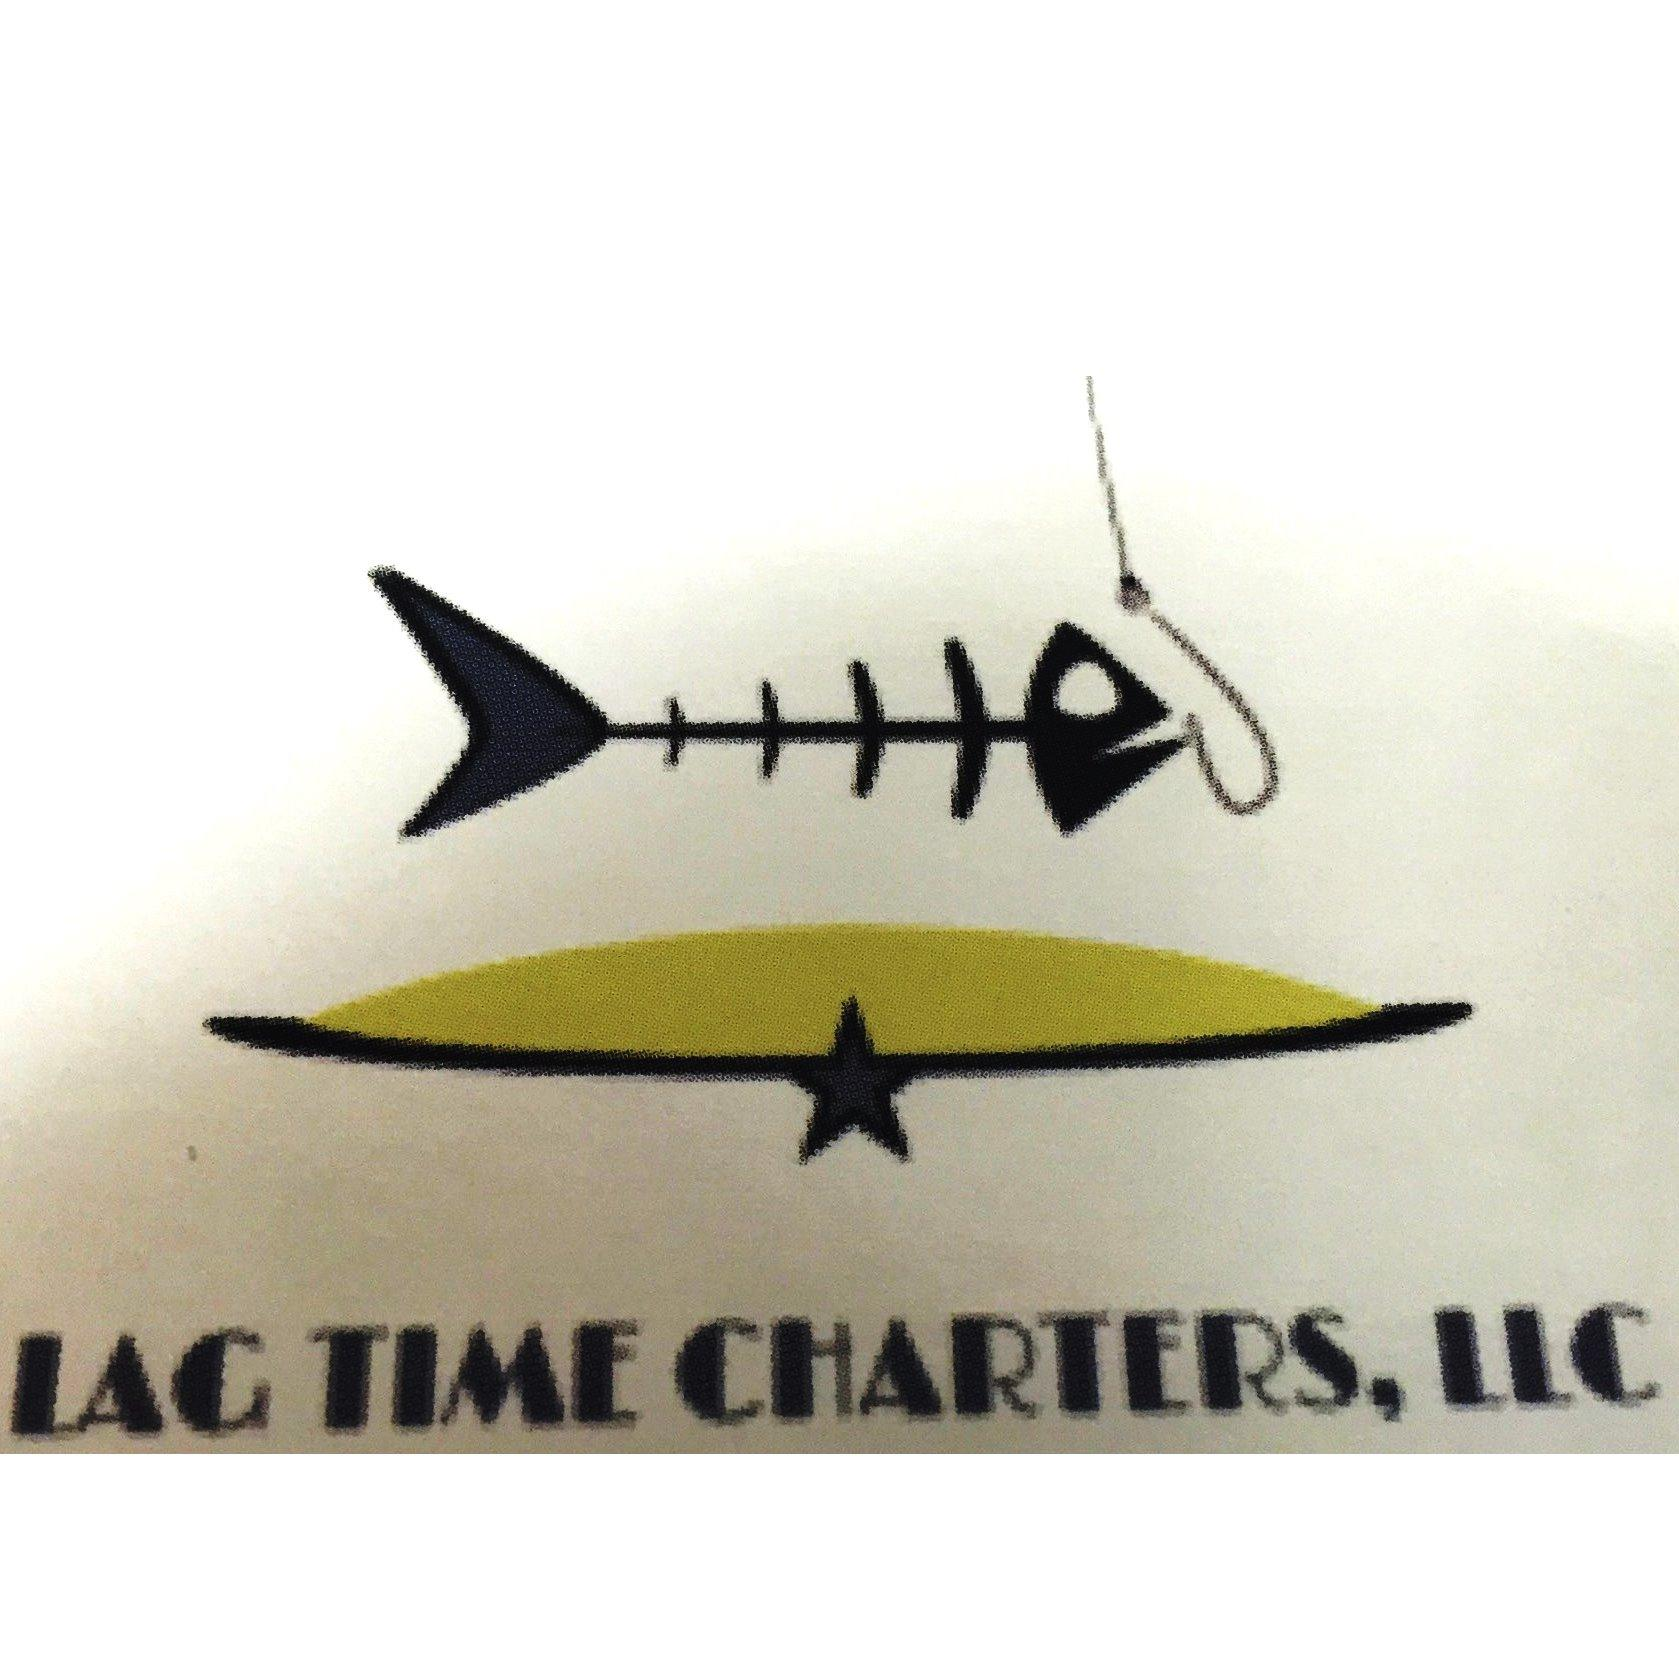 Lagtime Charters - Gloucester, MA 01930 - (978)290-6642 | ShowMeLocal.com